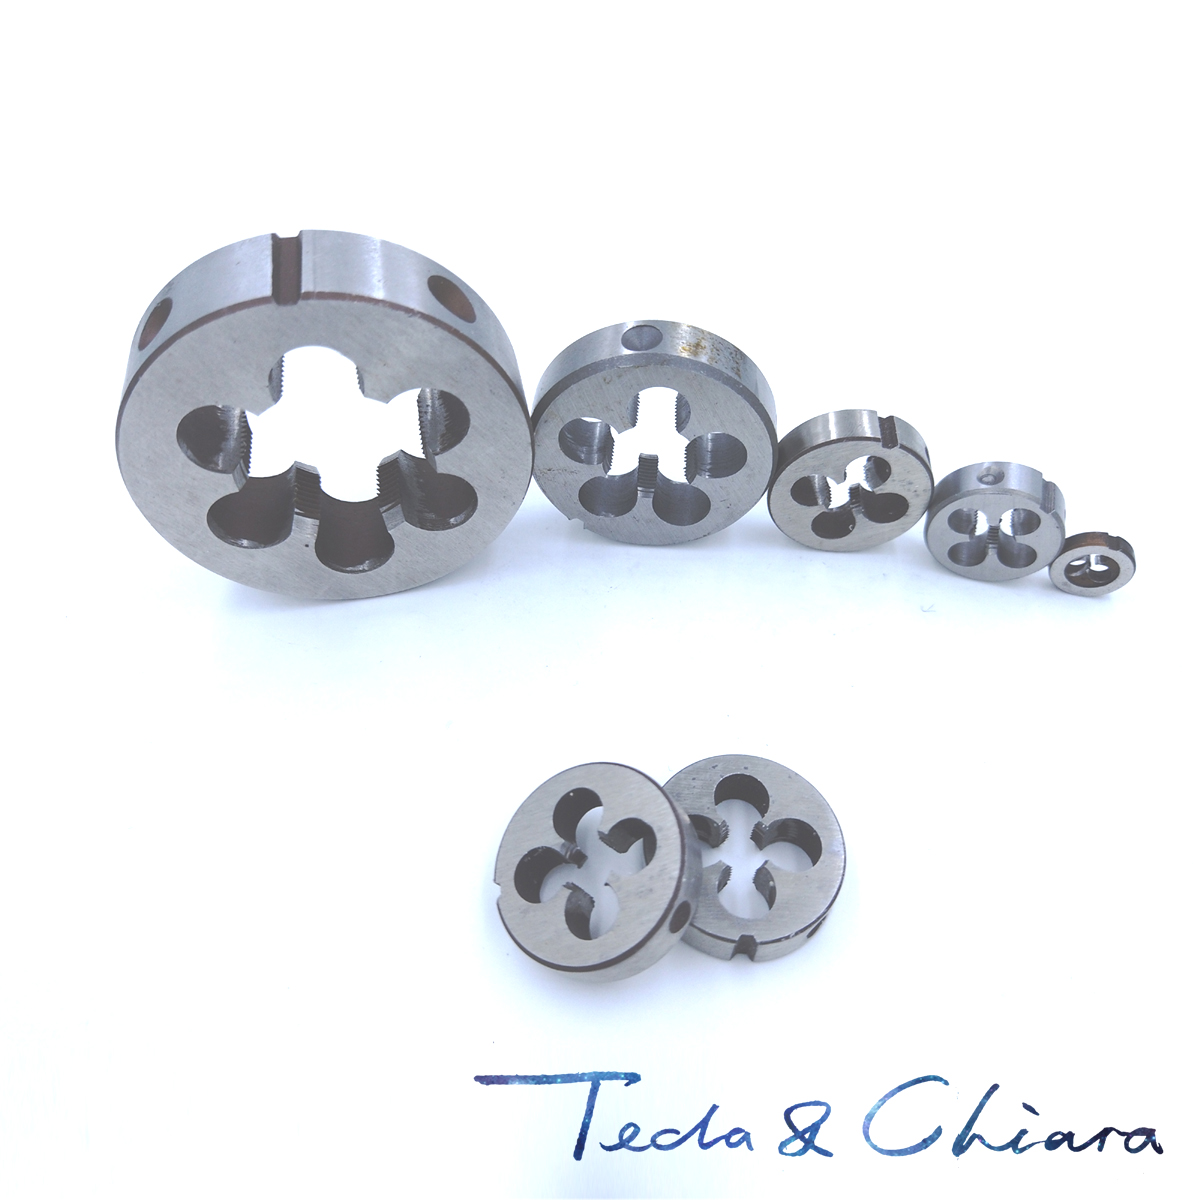 M24 M25 X 1mm 1.25mm 1.5mm 1.75mm 2mm 3mm Metric Right Hand Die Threading Tools For Mold Machining * 1 1.25 1.5 1.75 2 3